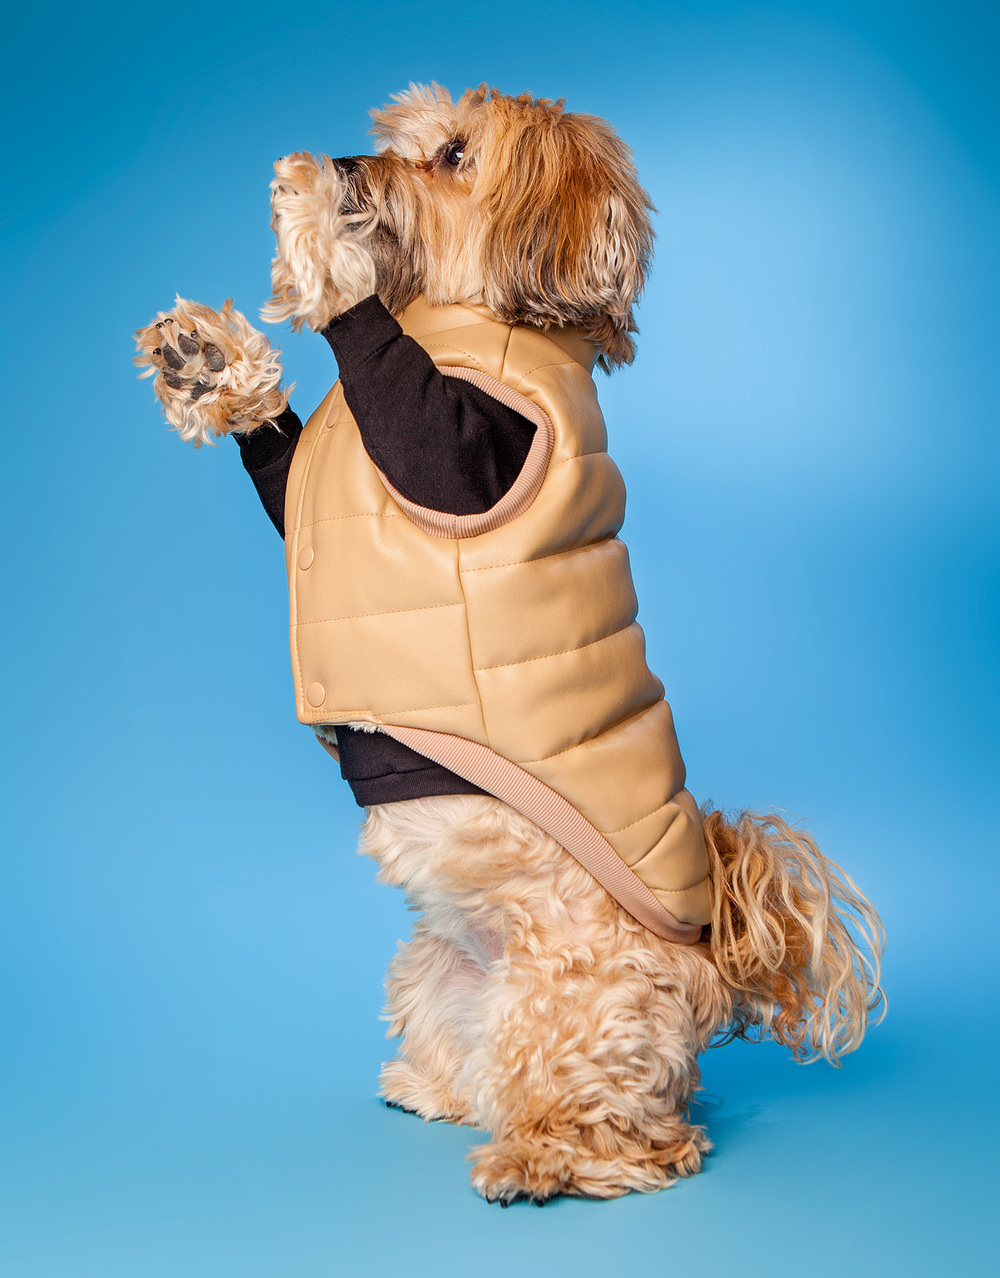 HUTS and BAY | Padded Leather Vest in Camelover the DOG & CO. | Little Black TShirt